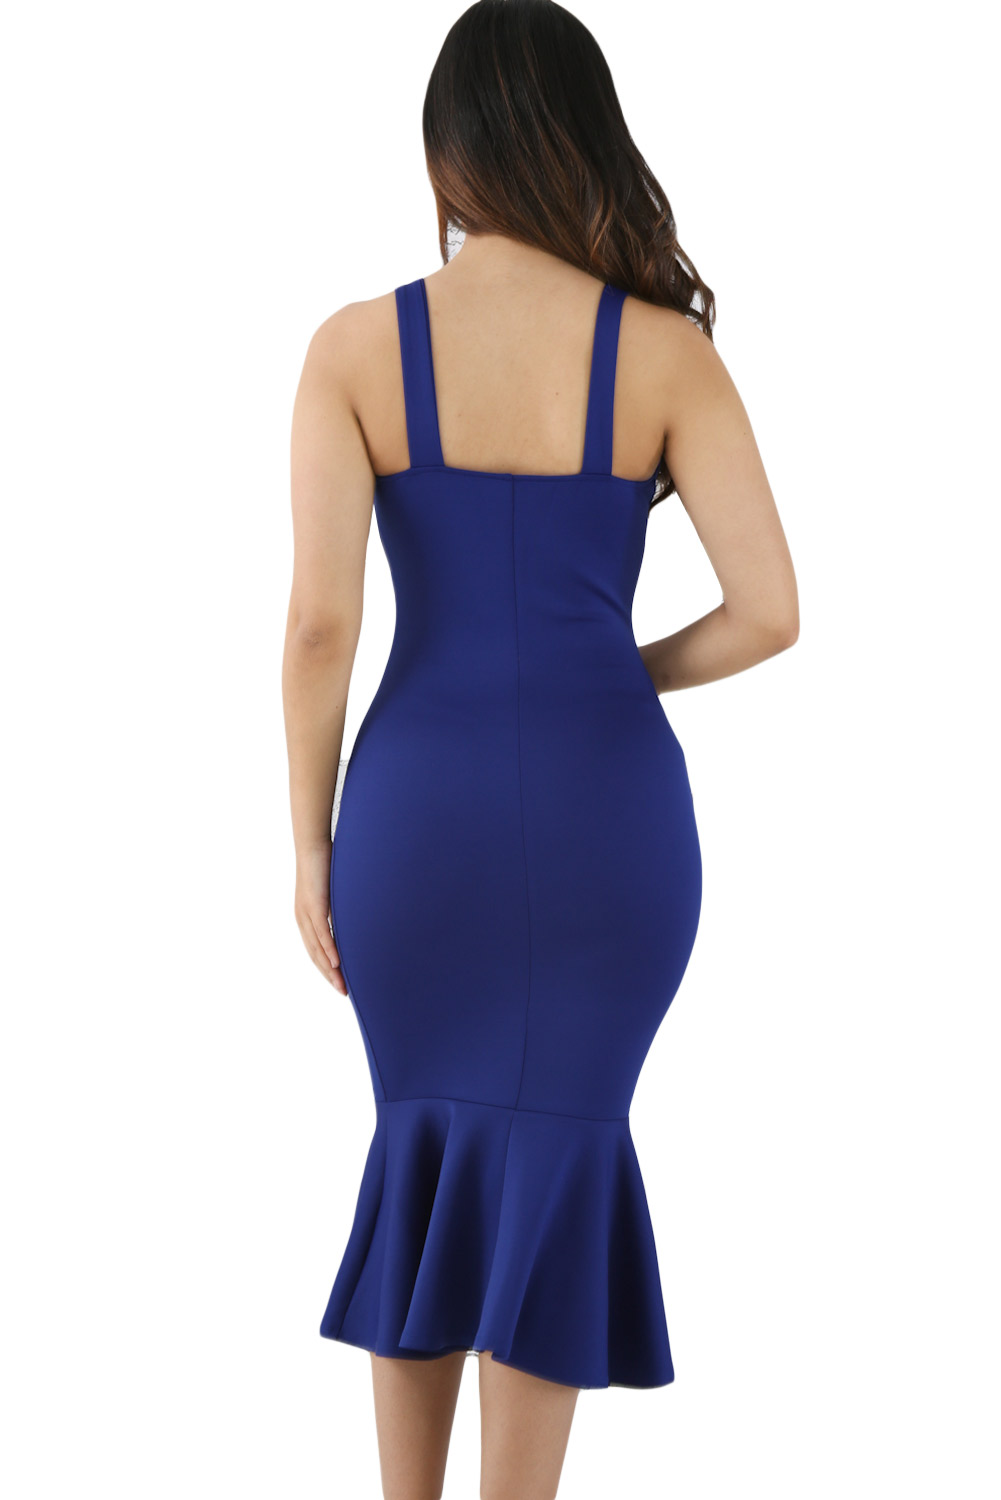 Blue Elegant Mermaid Bodycon Dress